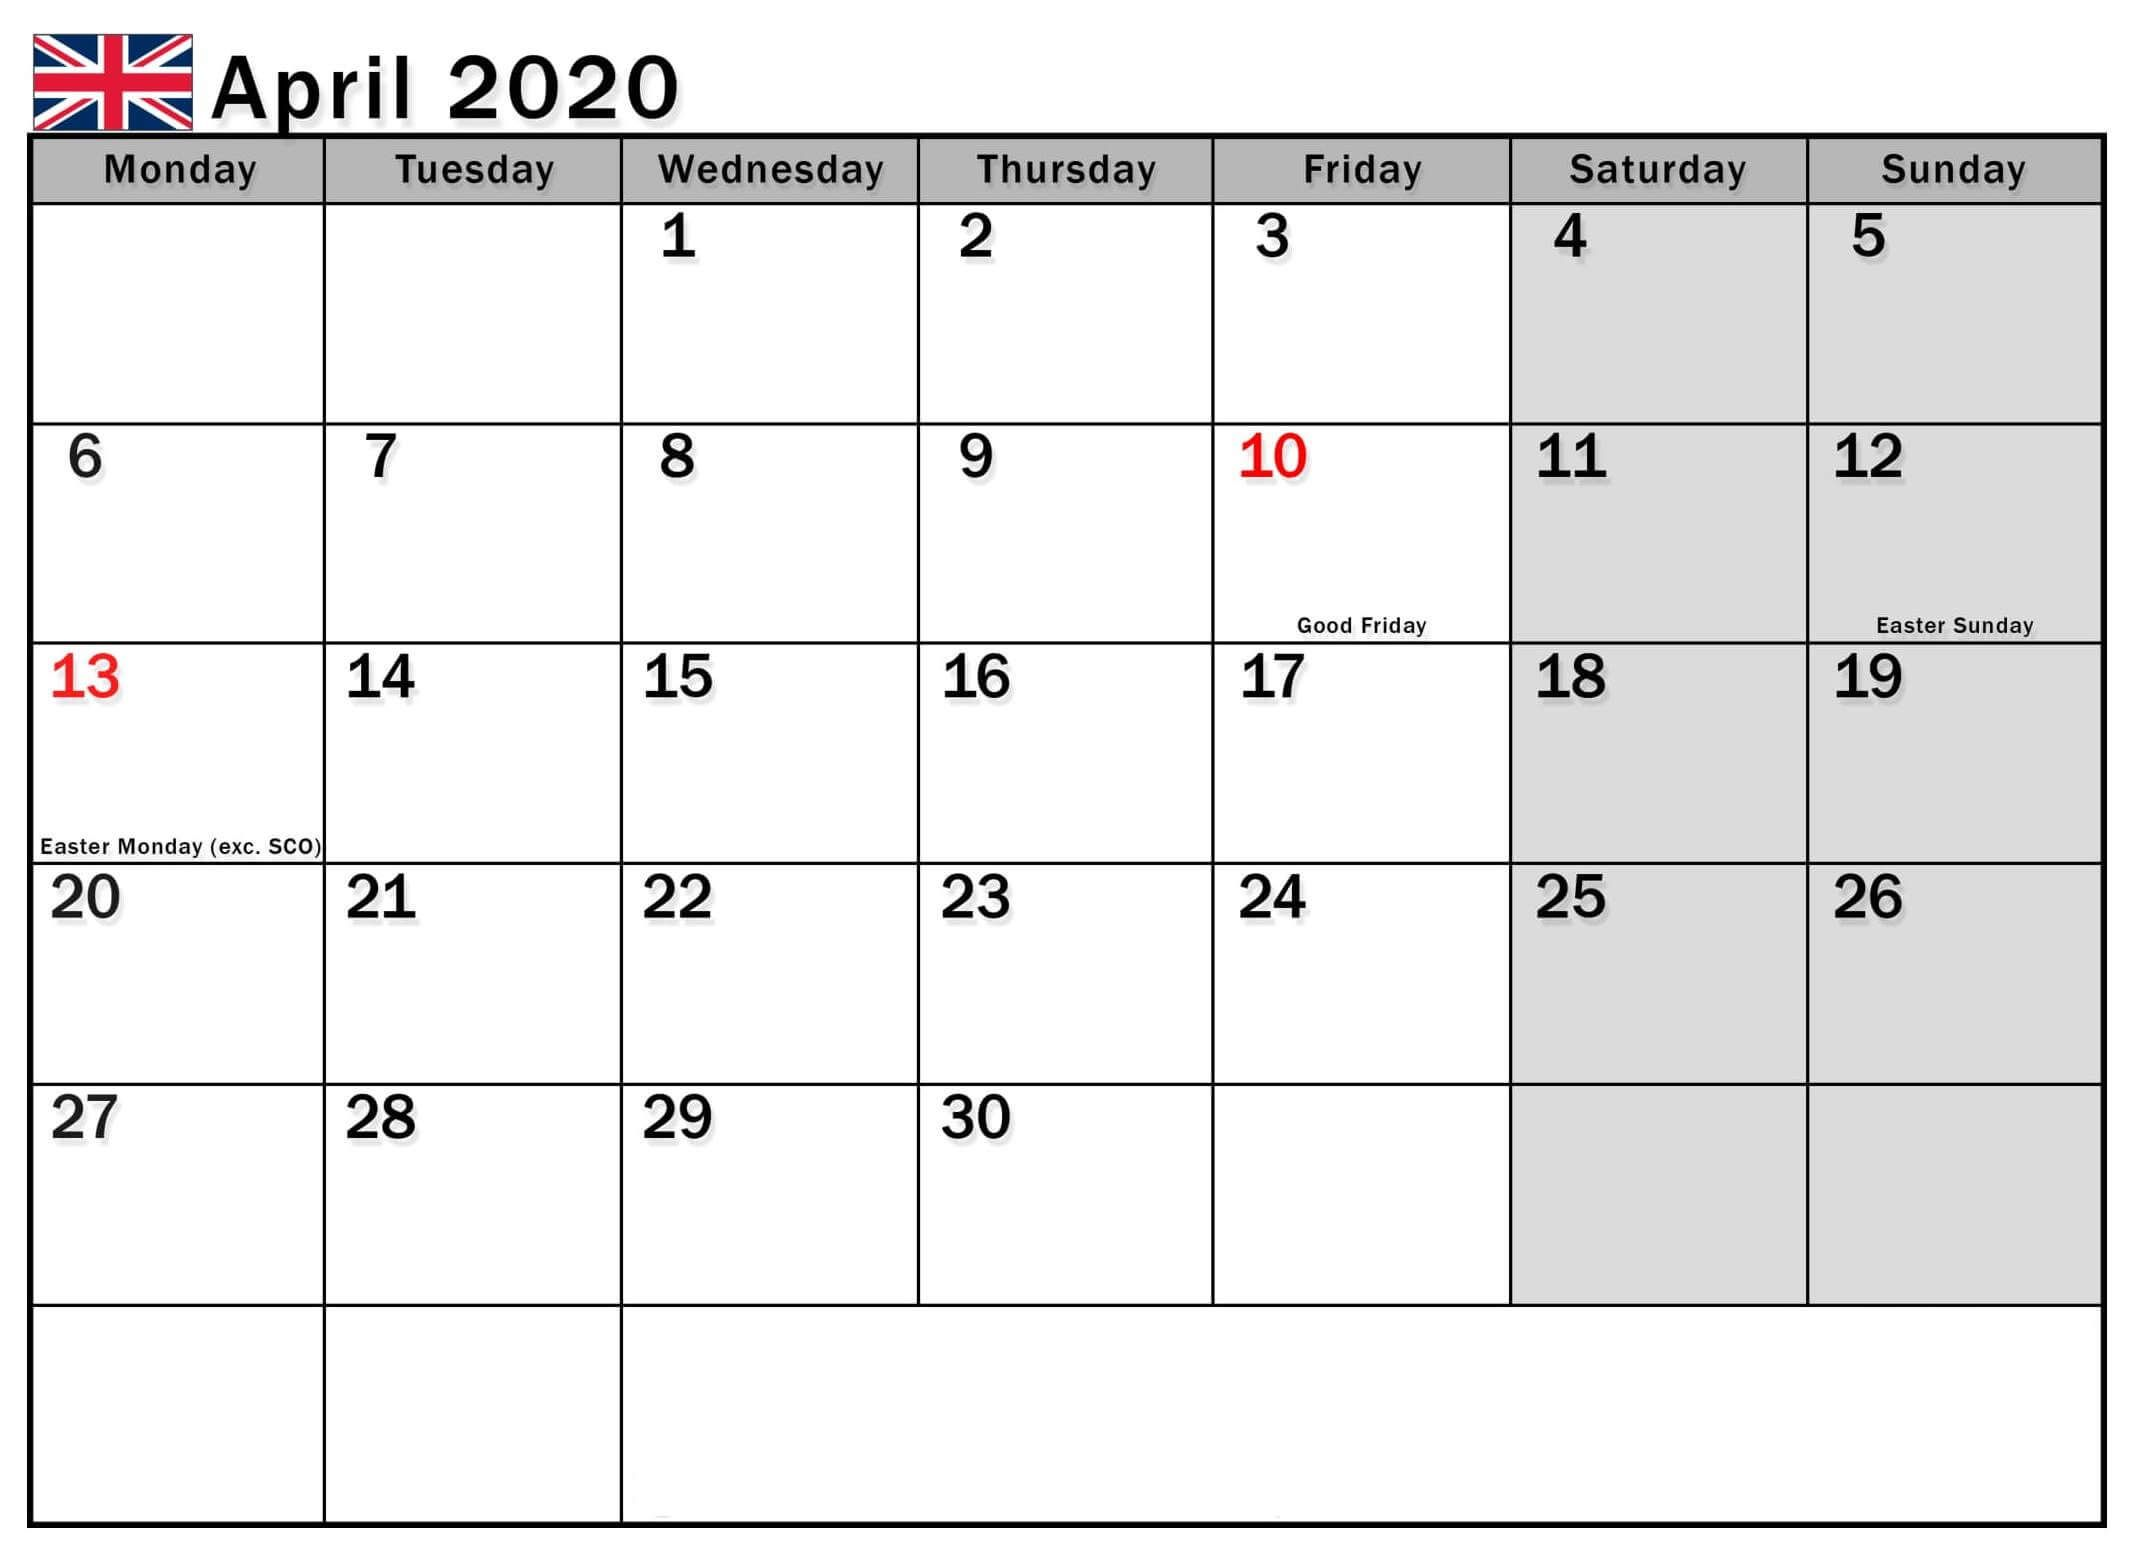 April 2020 Calendar With UK Holidays in 2020 | Holiday calendar, Calendar uk,  January calendar